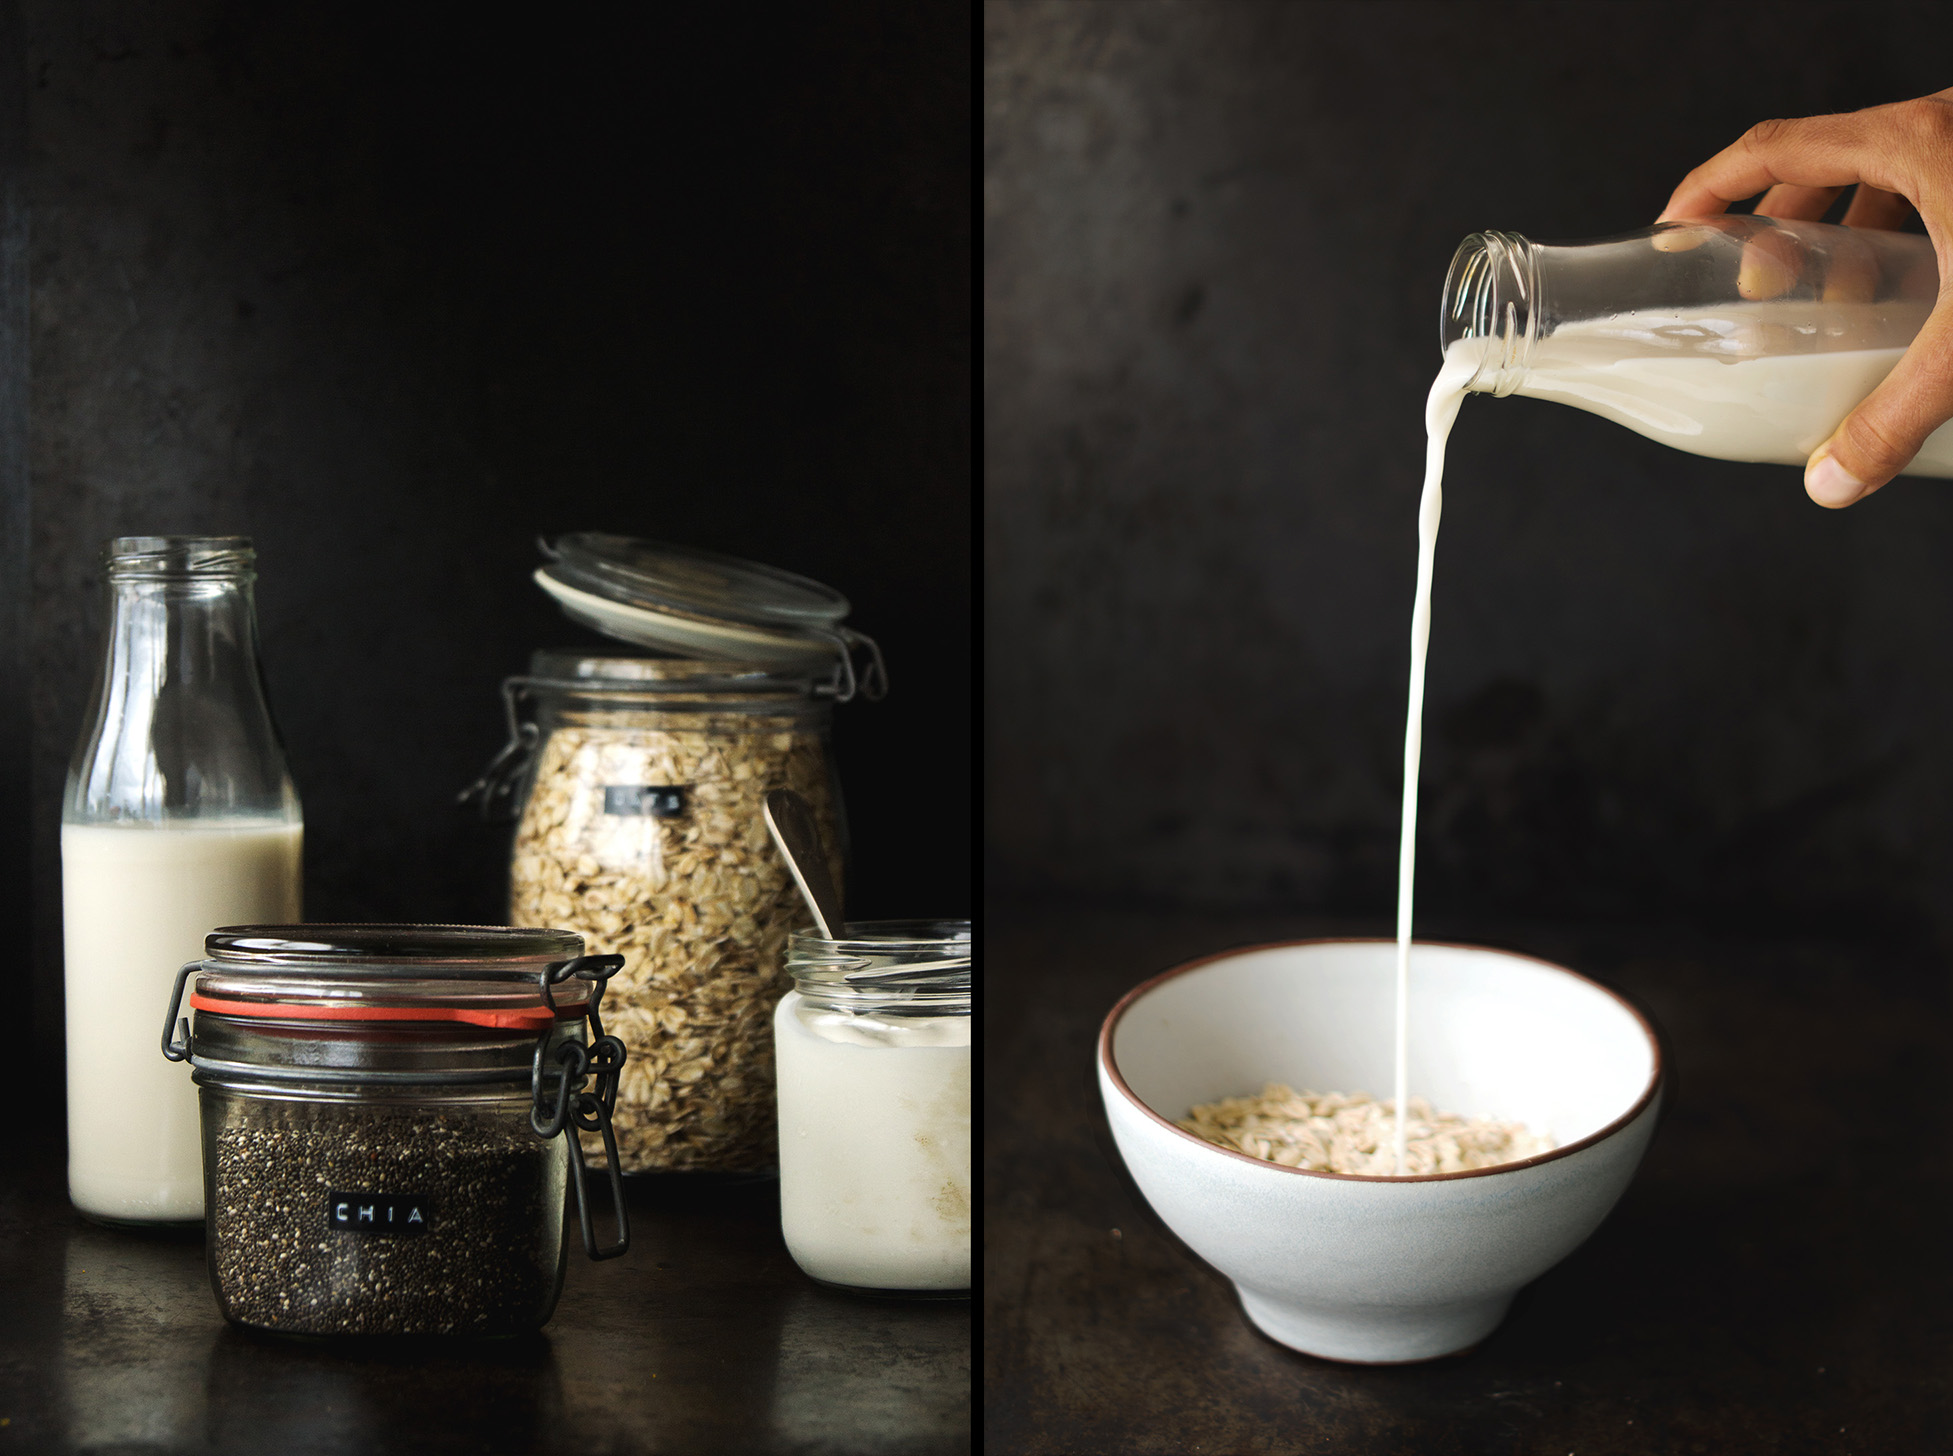 Simple Ingredients for a simple breakfast - chia, oats, milk & yoghurt